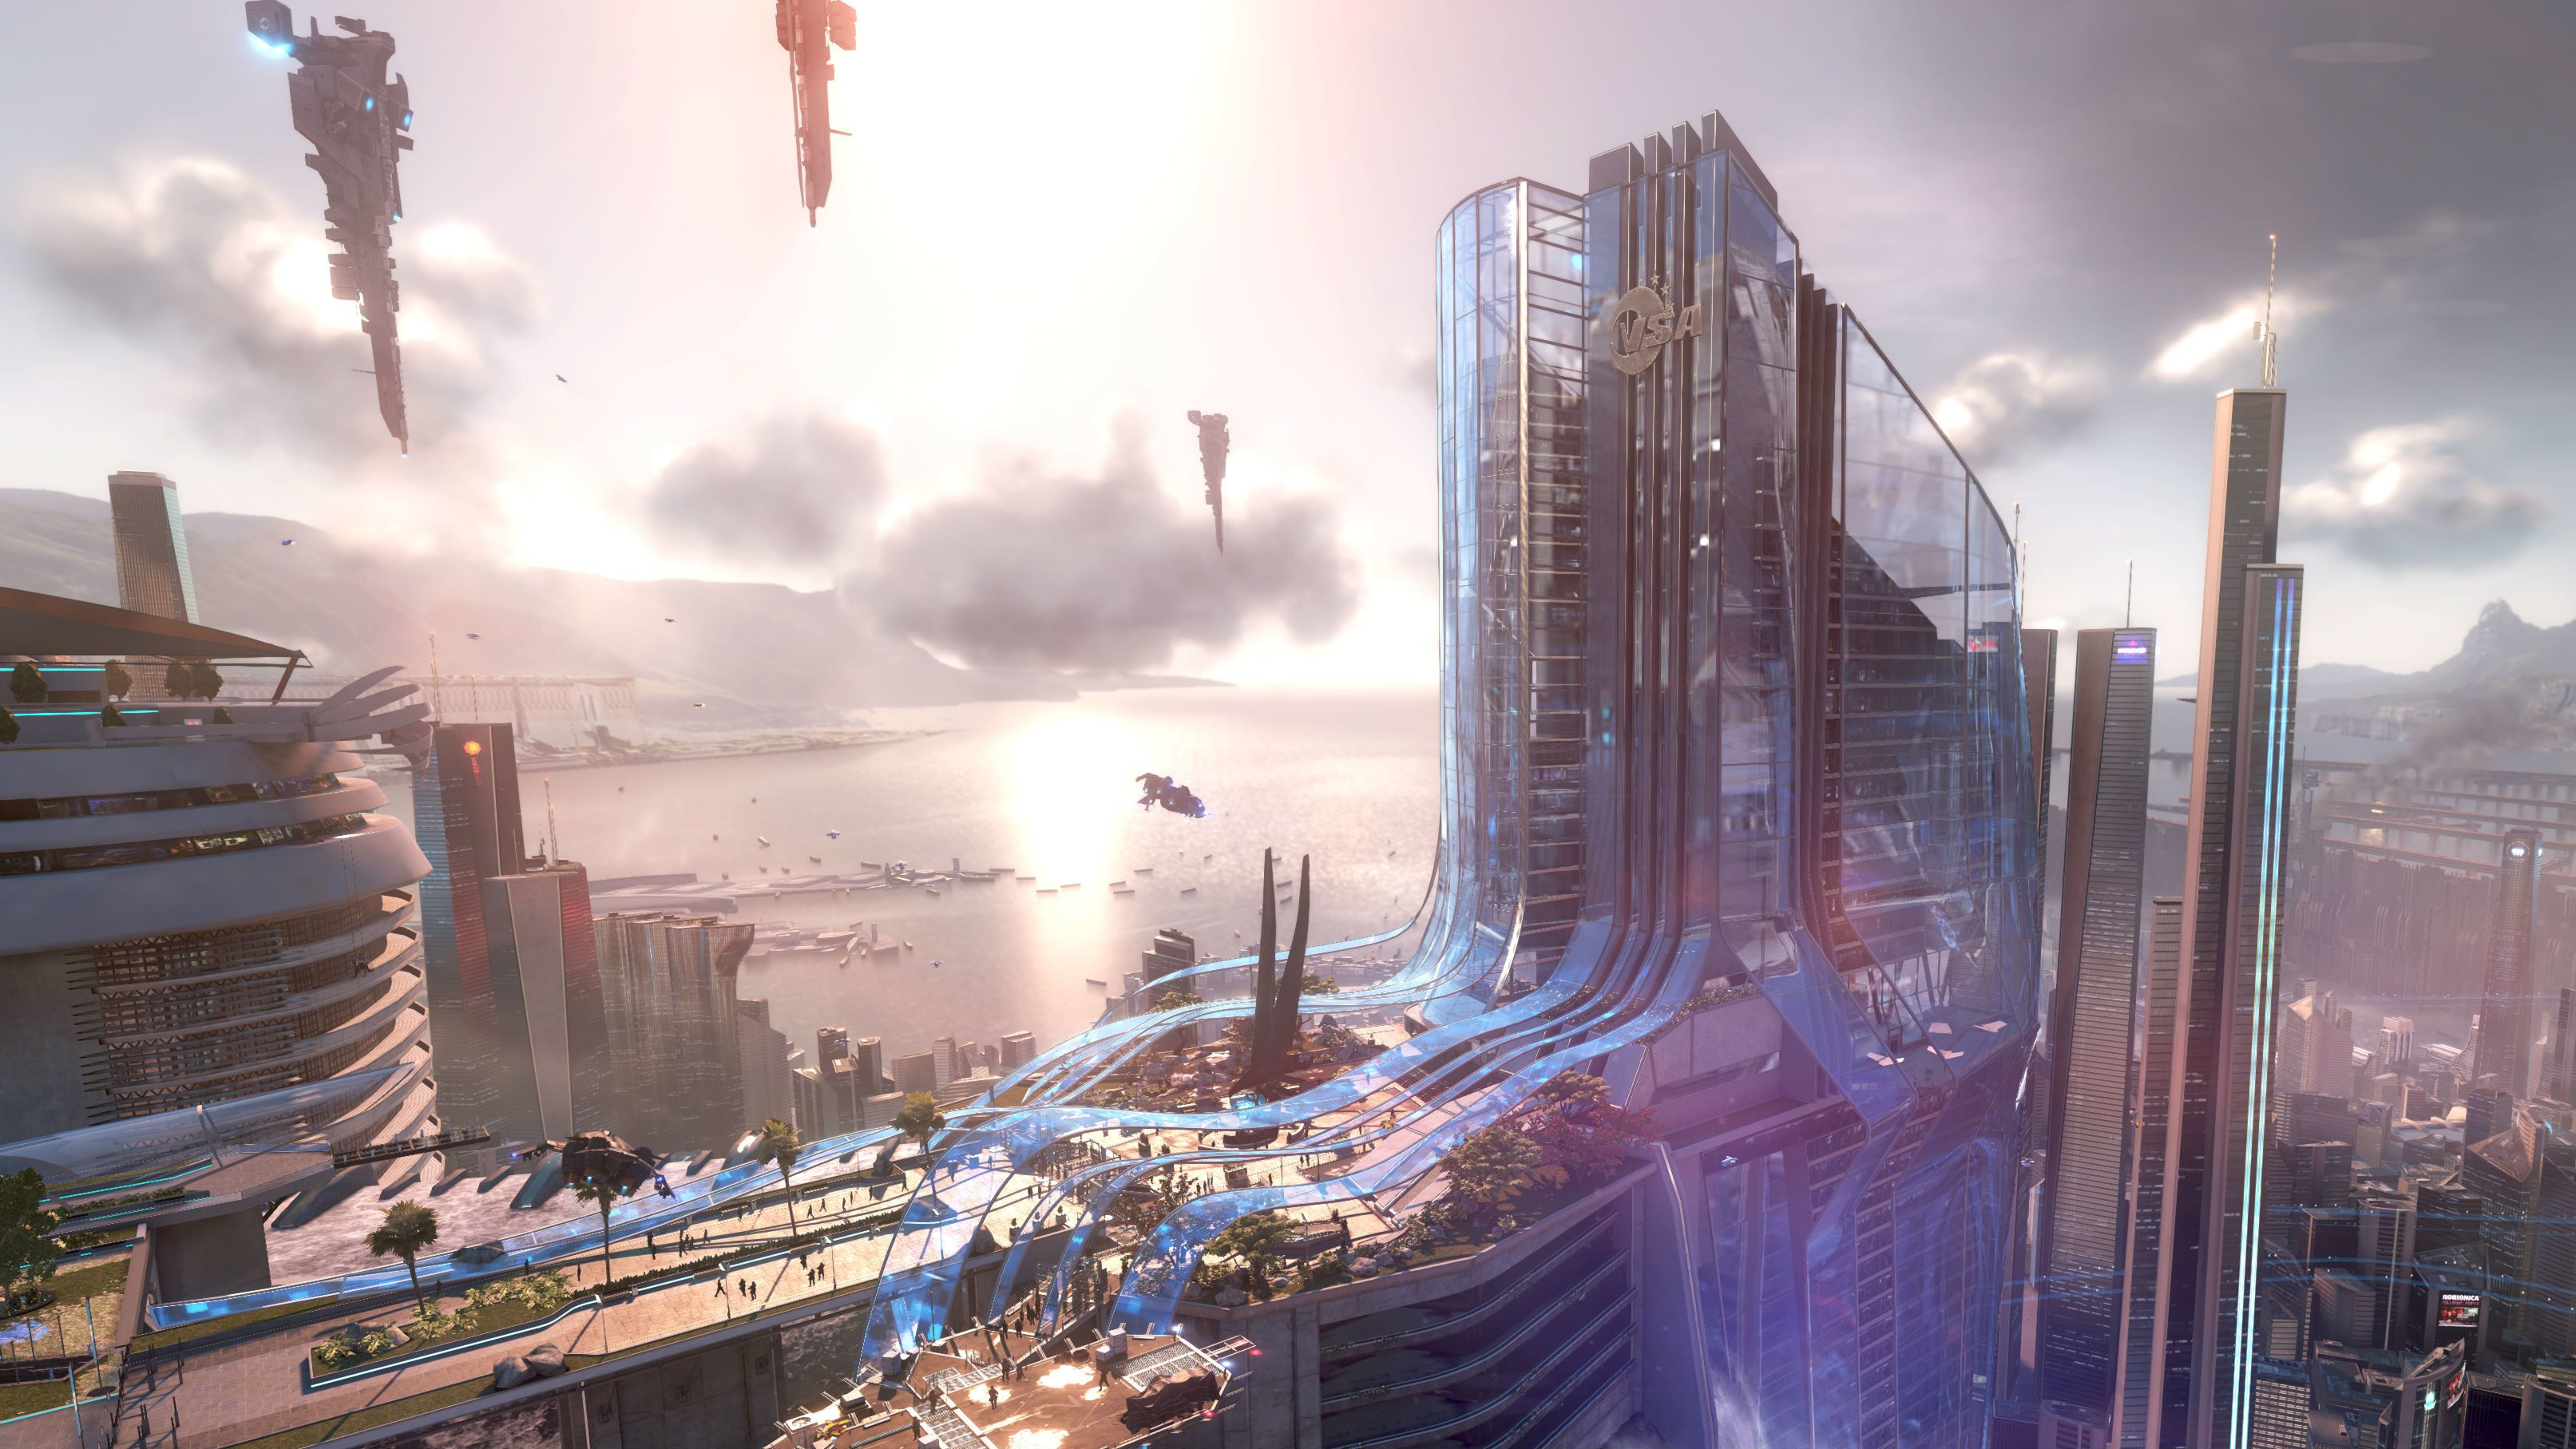 3226x1815 - Sci Fi City Wallpapers 40